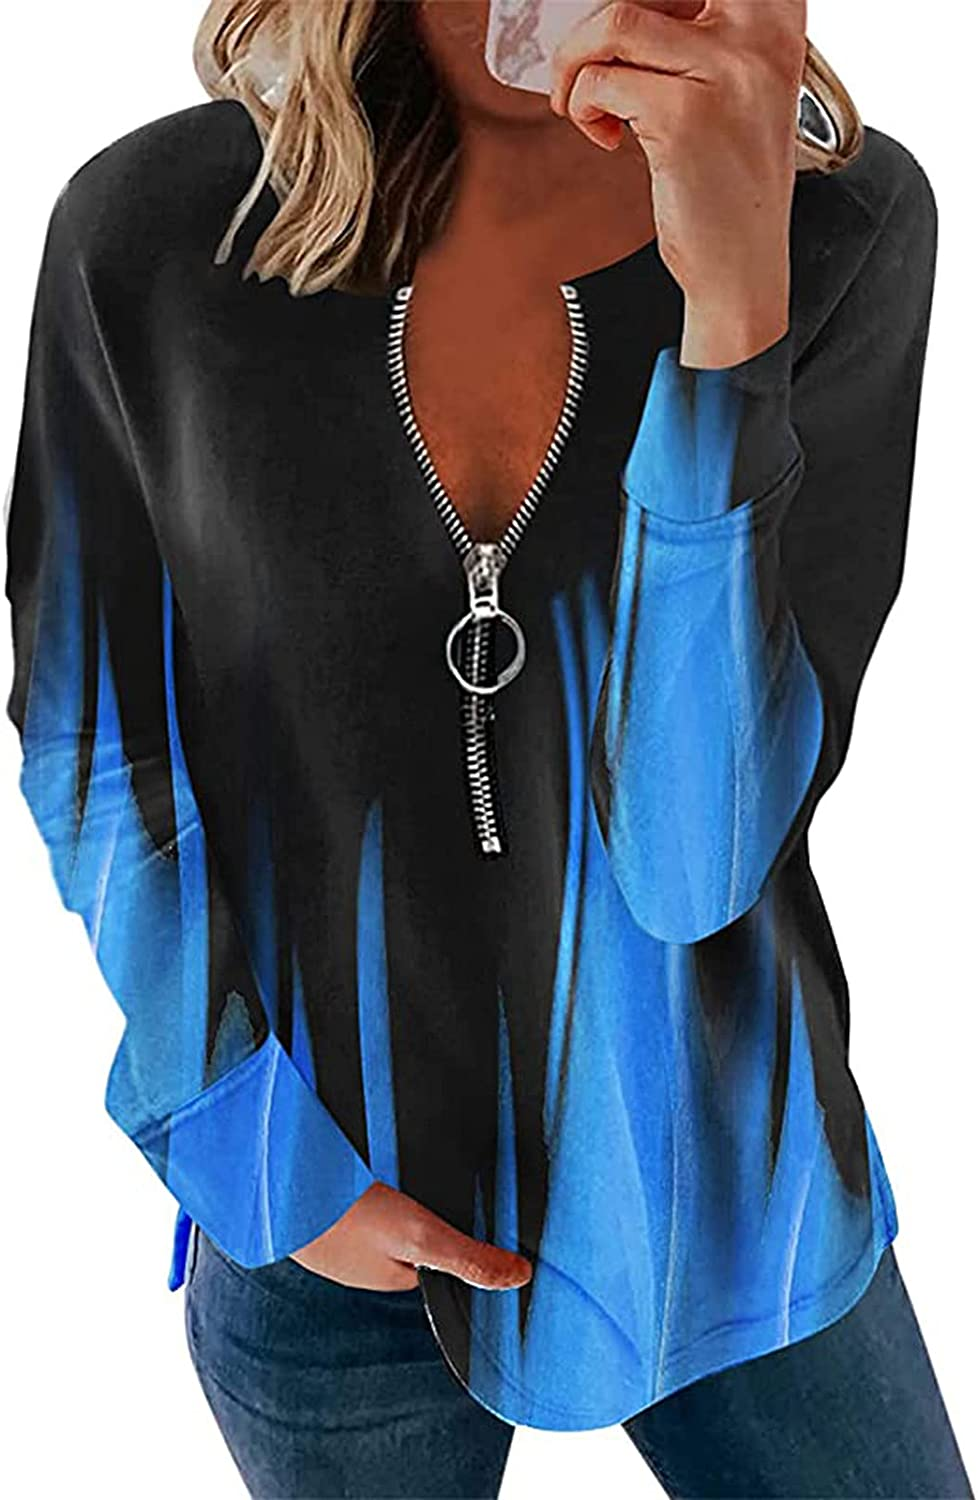 SPOORYYO Long Sleeve Tops for Women, Womens Fashion V Neck Solid Zipper Pullover Sweatshirt Casual Loose Tee Shirt Blouse